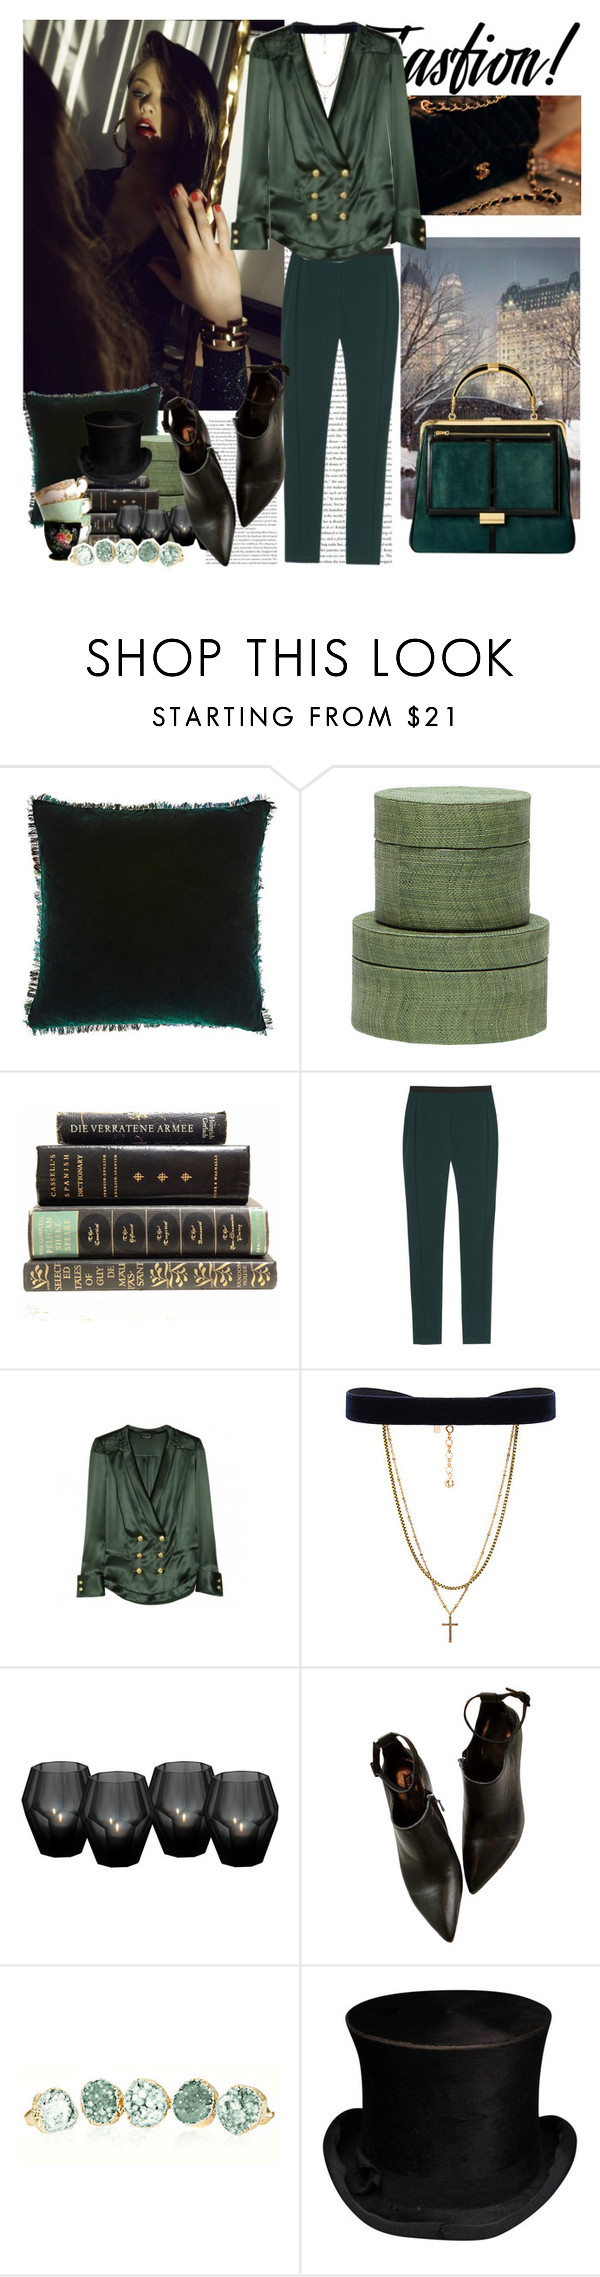 """""""Untitled #530"""" by moni4e ❤ liked on Polyvore featuring Chanel, Aviva Stanoff, Pigeon & Poodle, Chalayan, Balmain, Vanessa Mooney and Eichholtz"""